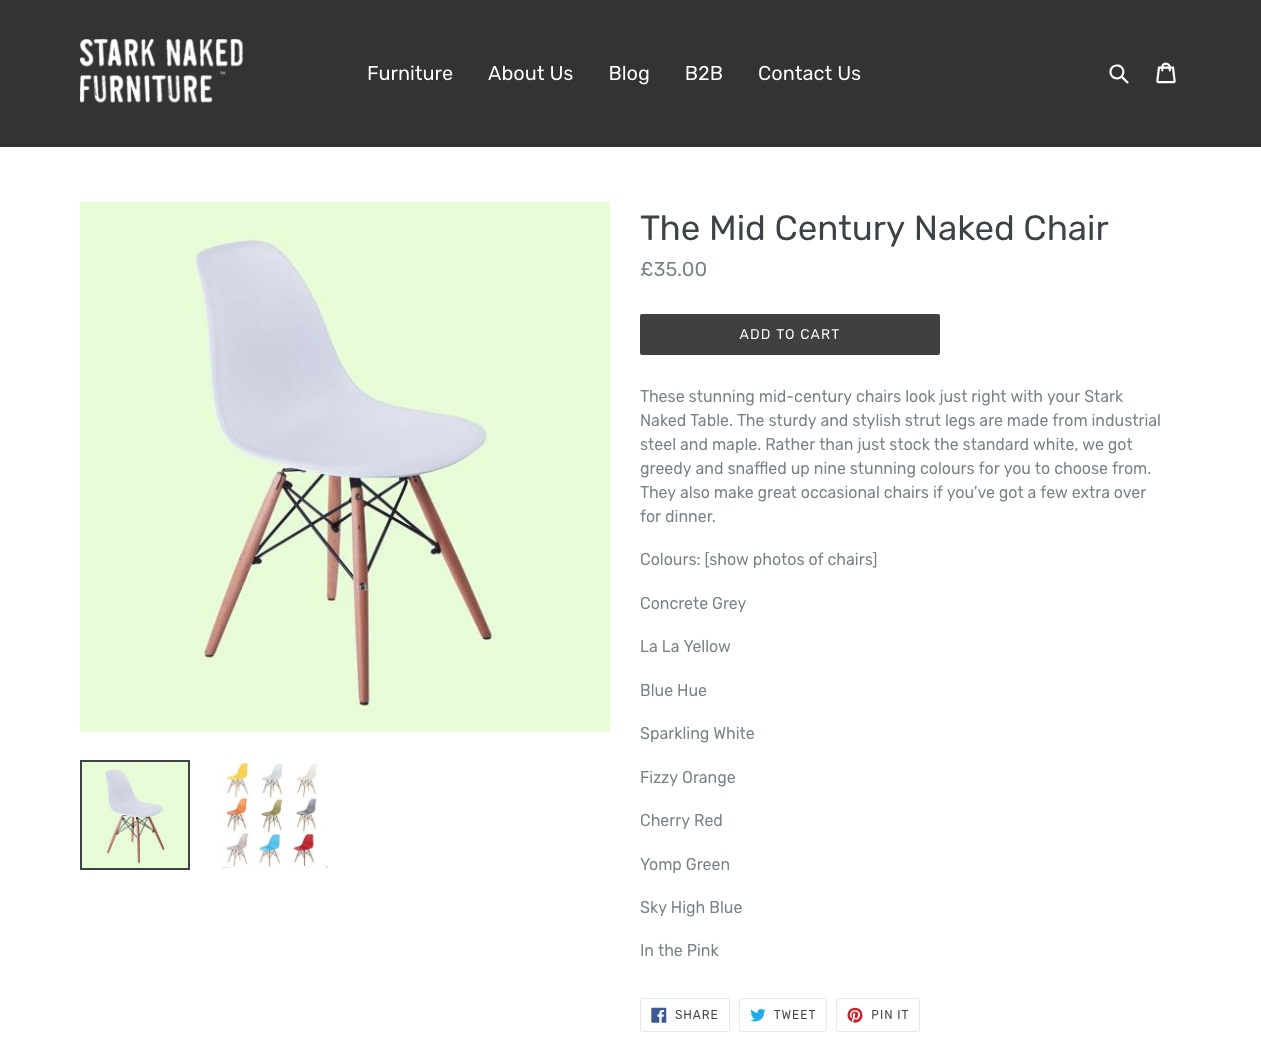 The+Mid+Century+Naked+Chair+%E2%80%93+Stark+Naked+Furniture.jpg